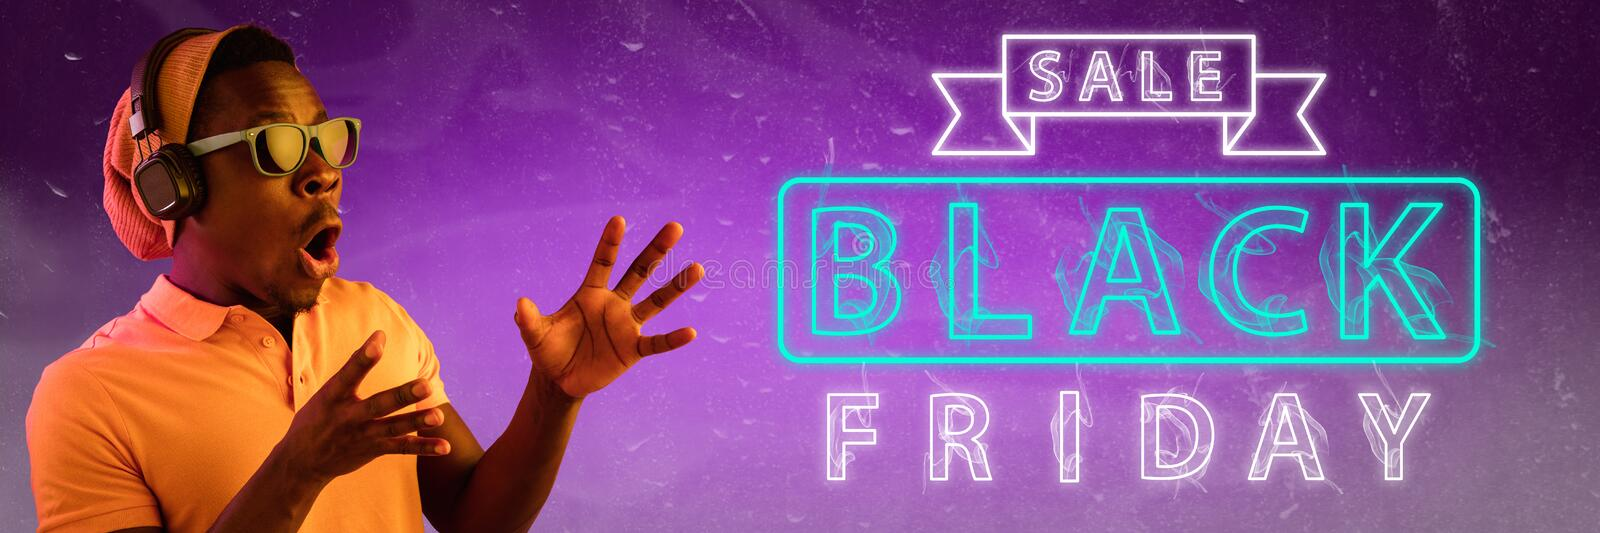 Black friday, sales. Modern design. Contemporary art collage. Black friday, sales, purchases concept. Neon lighted letters on gradient background. Astonished stock image